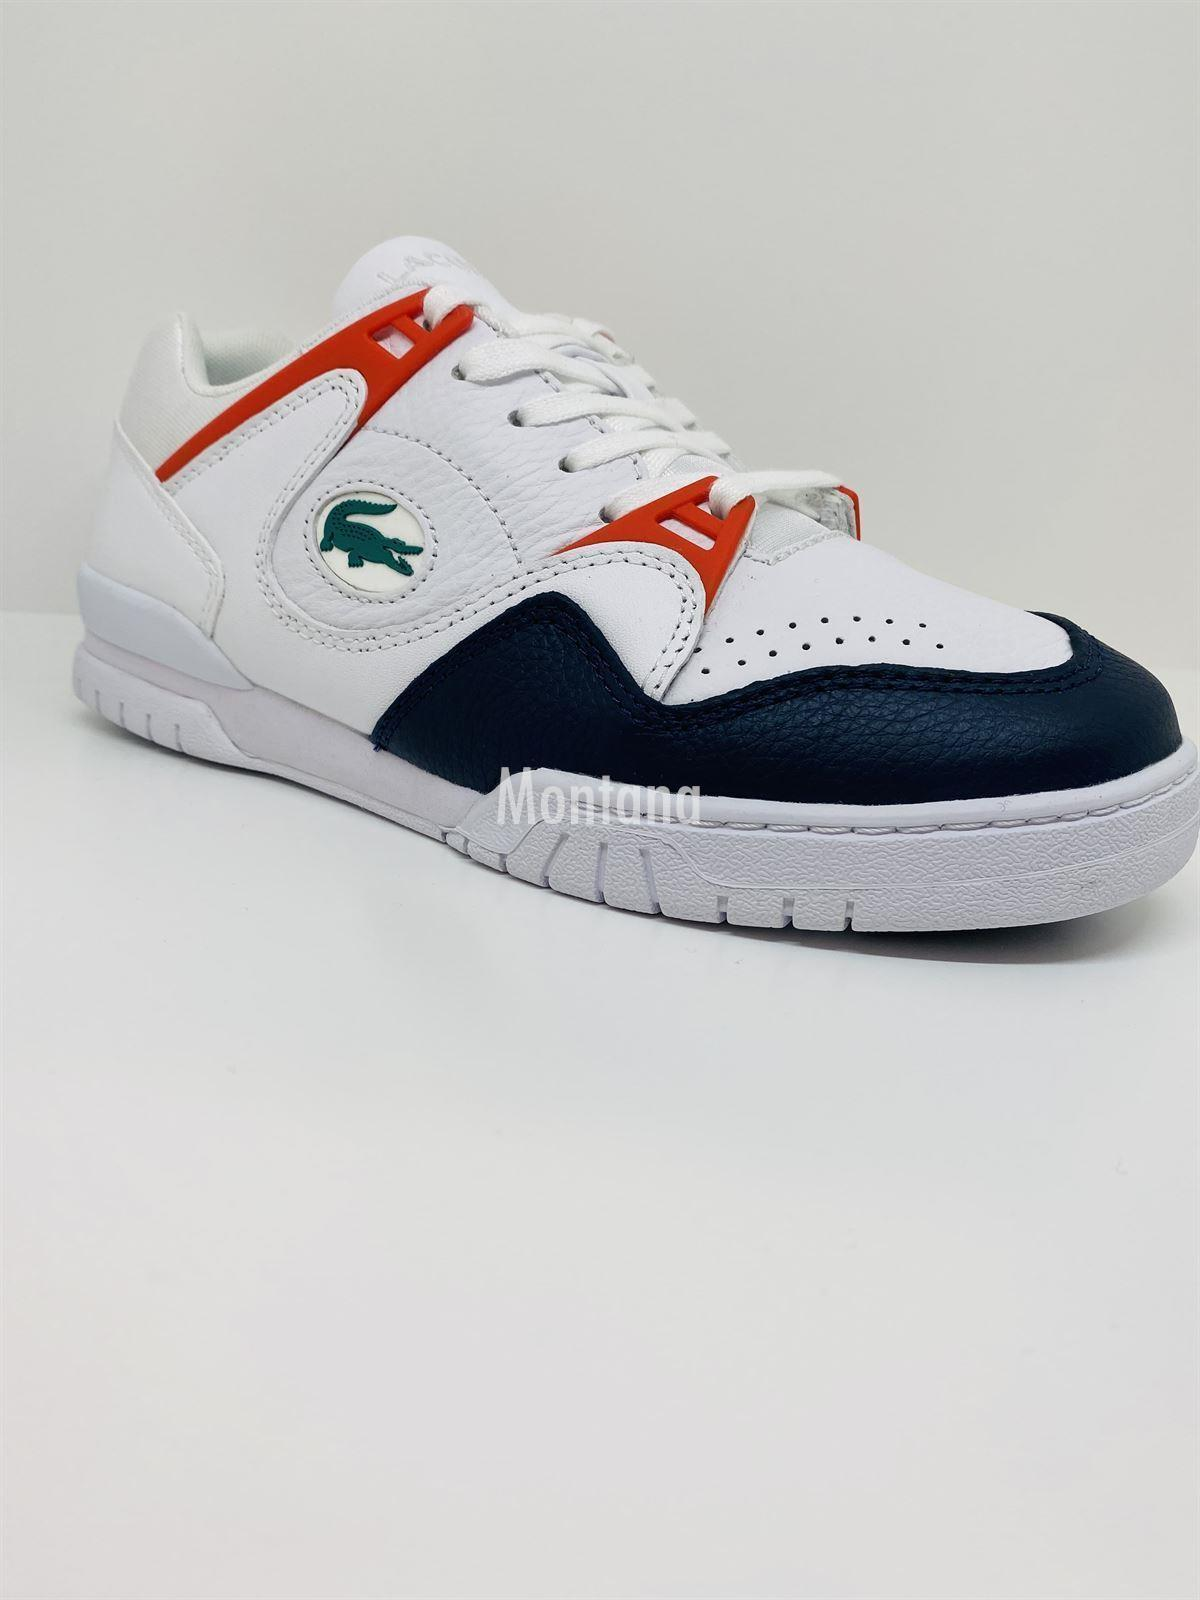 Zapatillas LACOSTE Courtpoint Leather 39SMA0004 White/Navy - Imagen 2